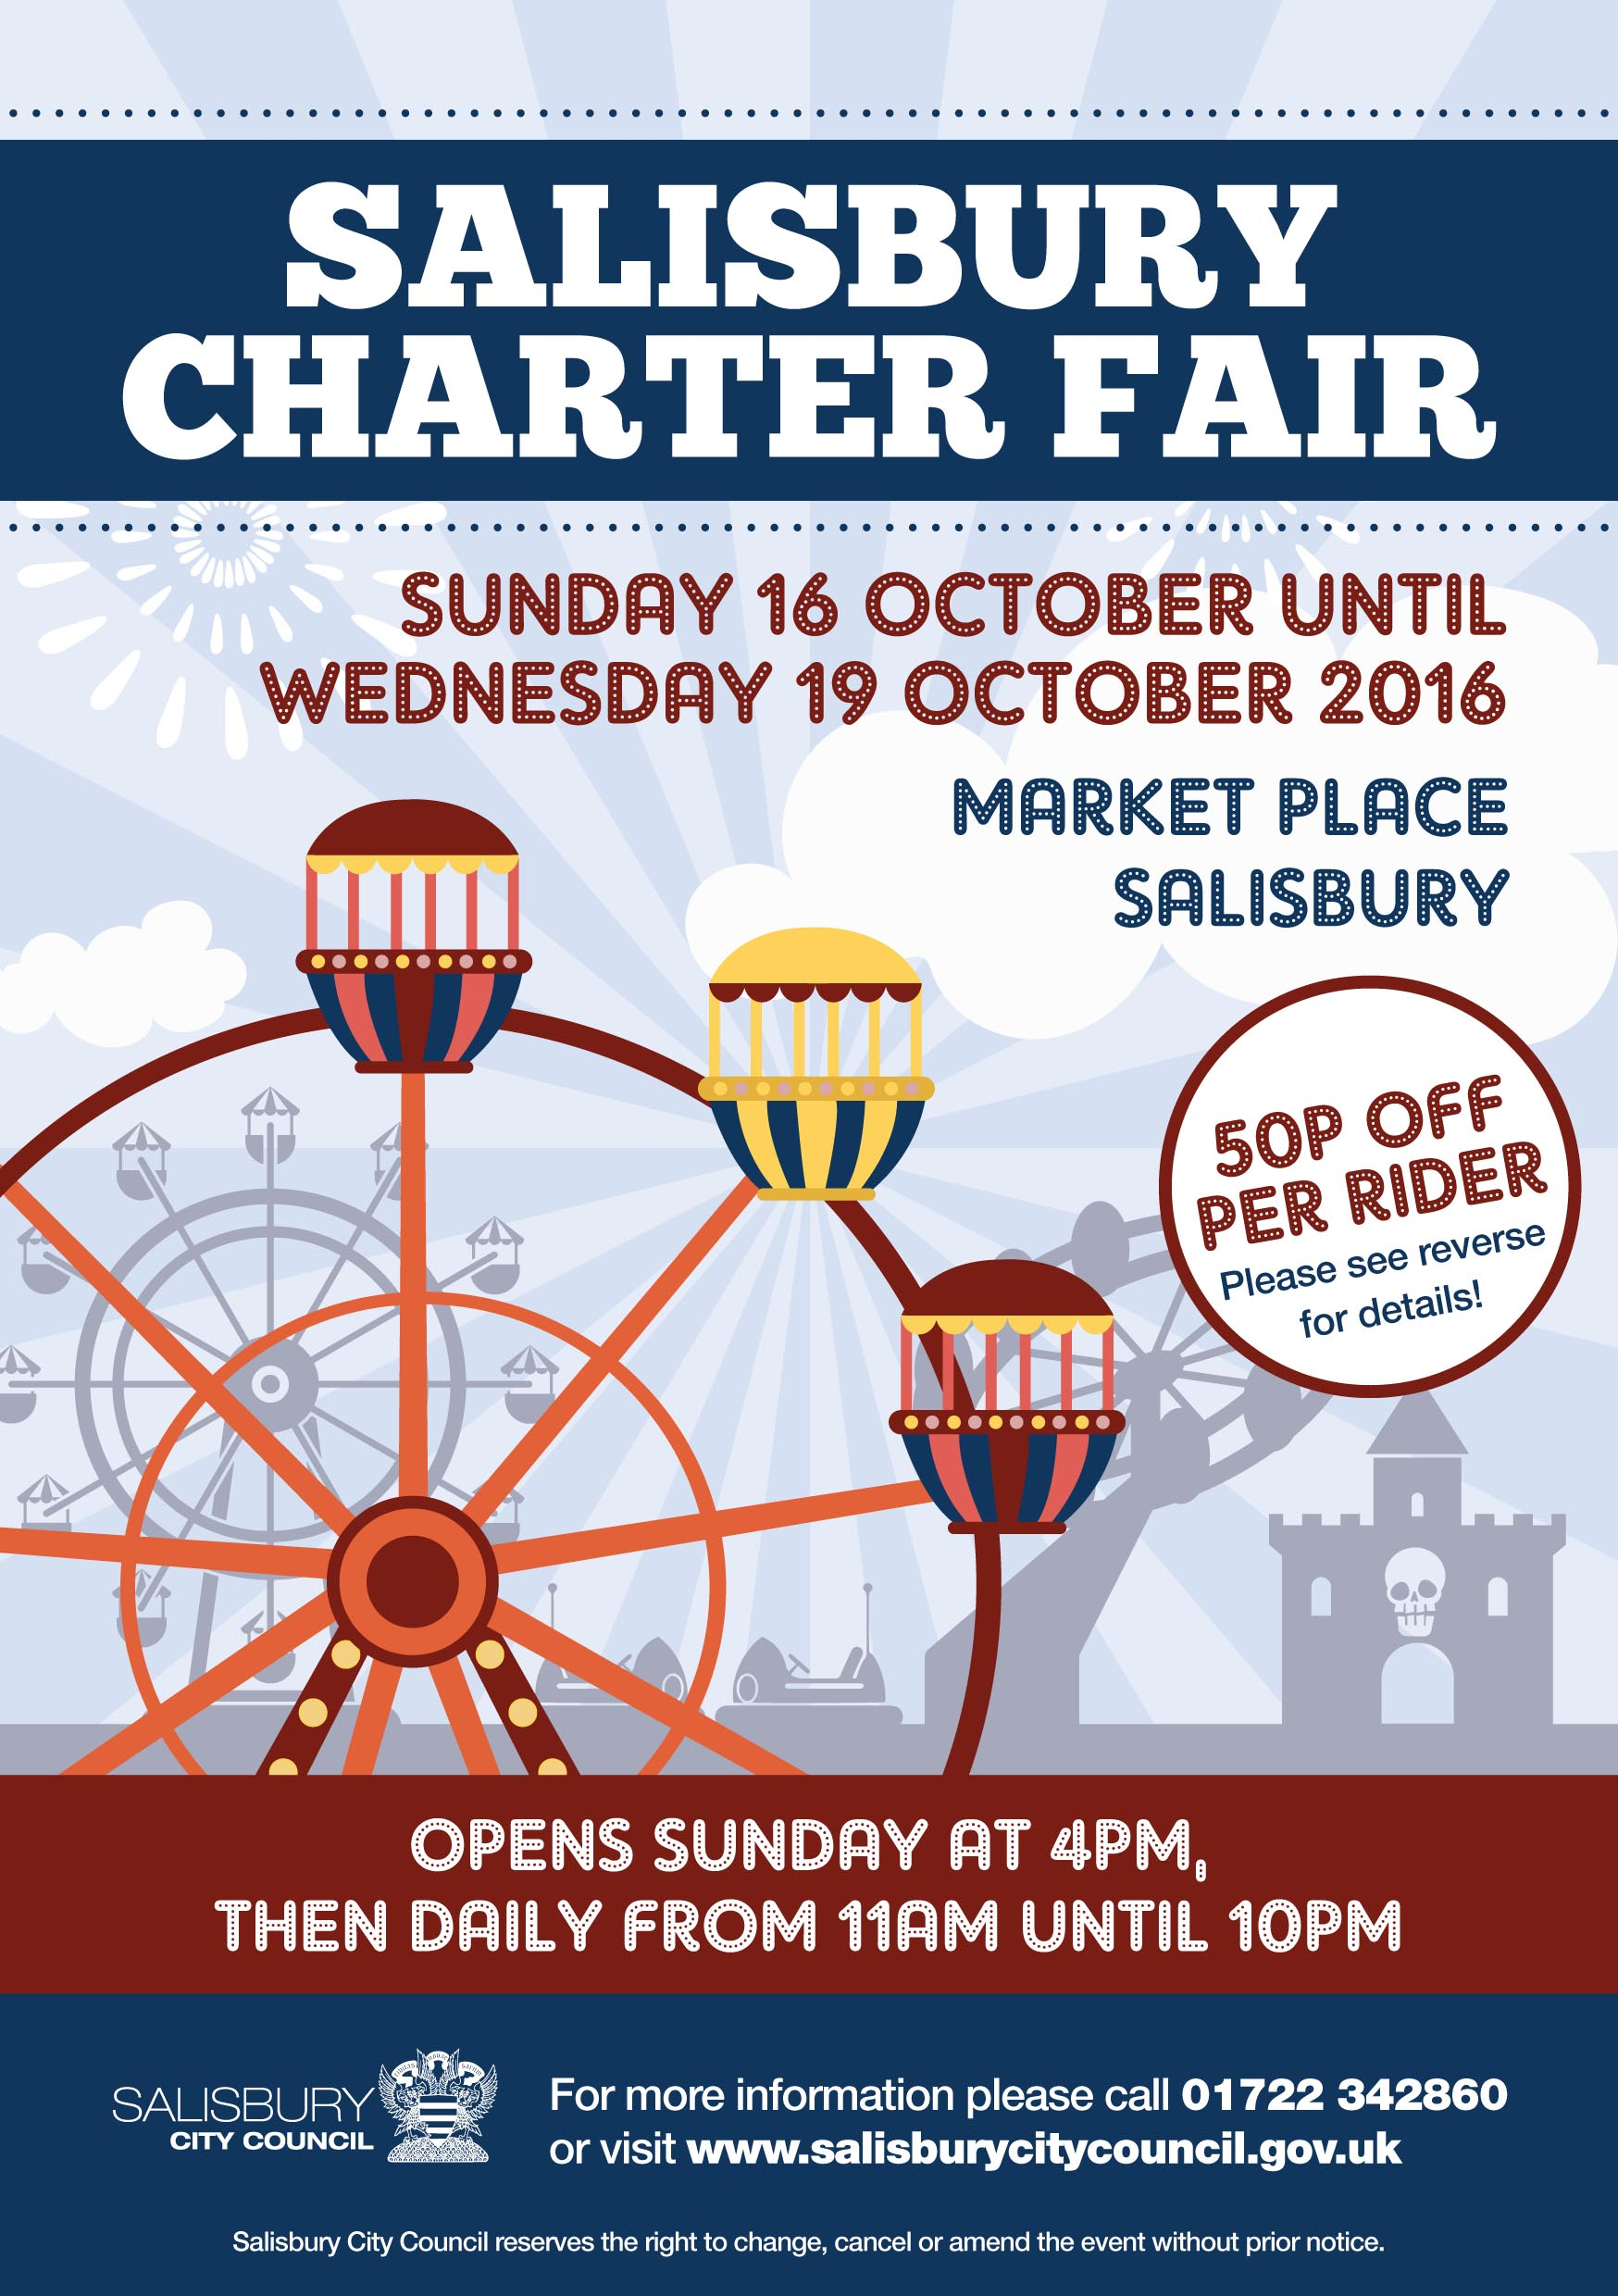 SCC Salisbury Charter Fair 2016 SCC001 for web